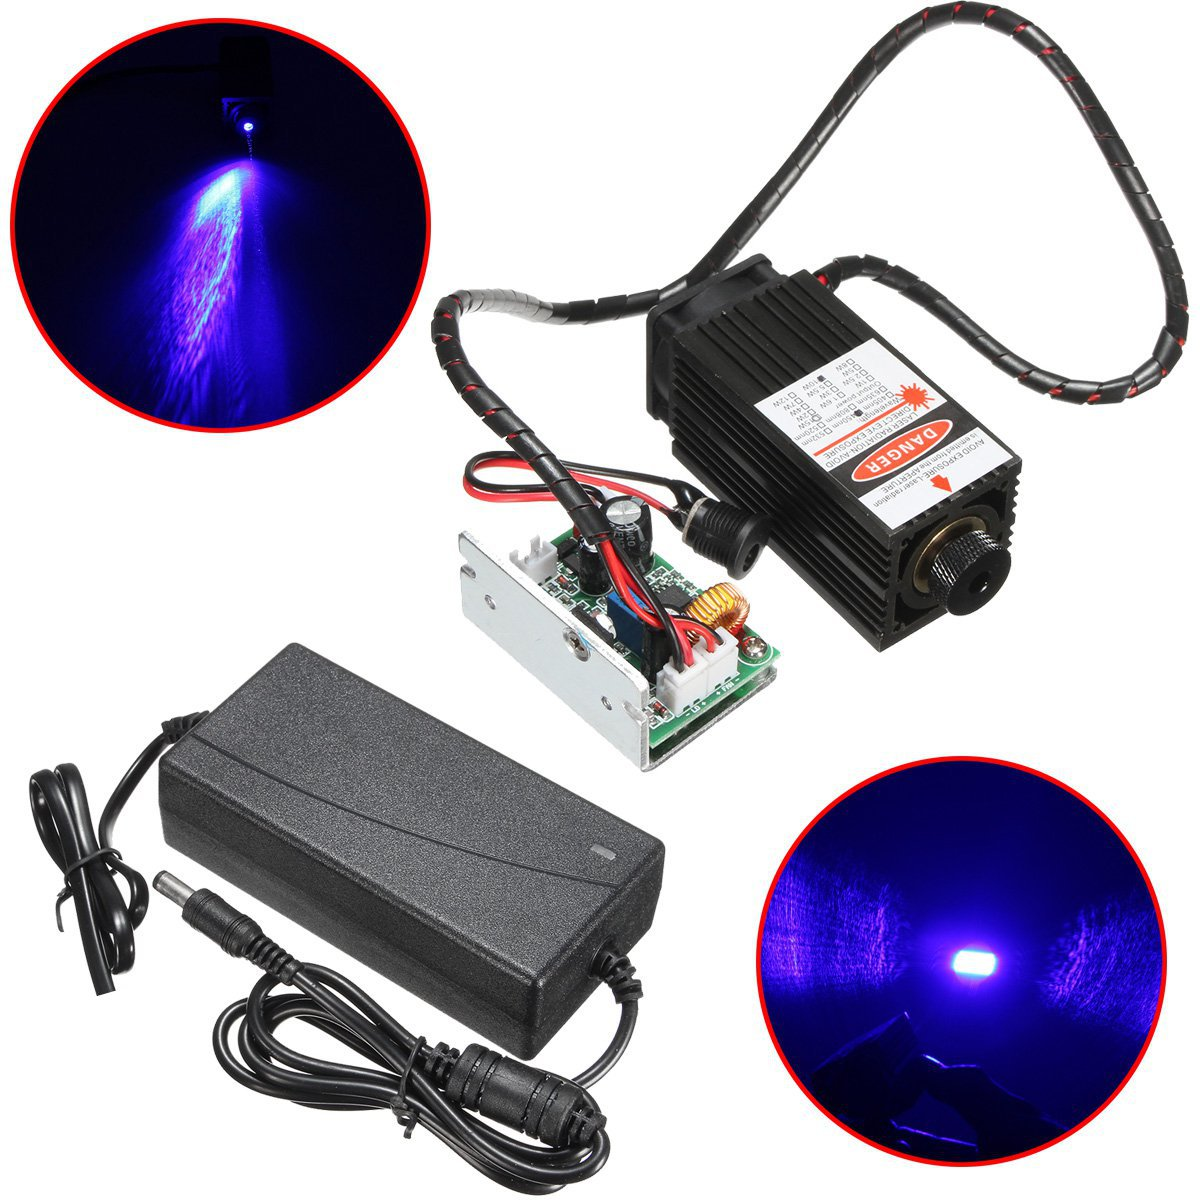 10W Laser Head Engraving Module 450nm Blue Light Marking Engraver With TTL Modulation DIY Diode Metal Marking